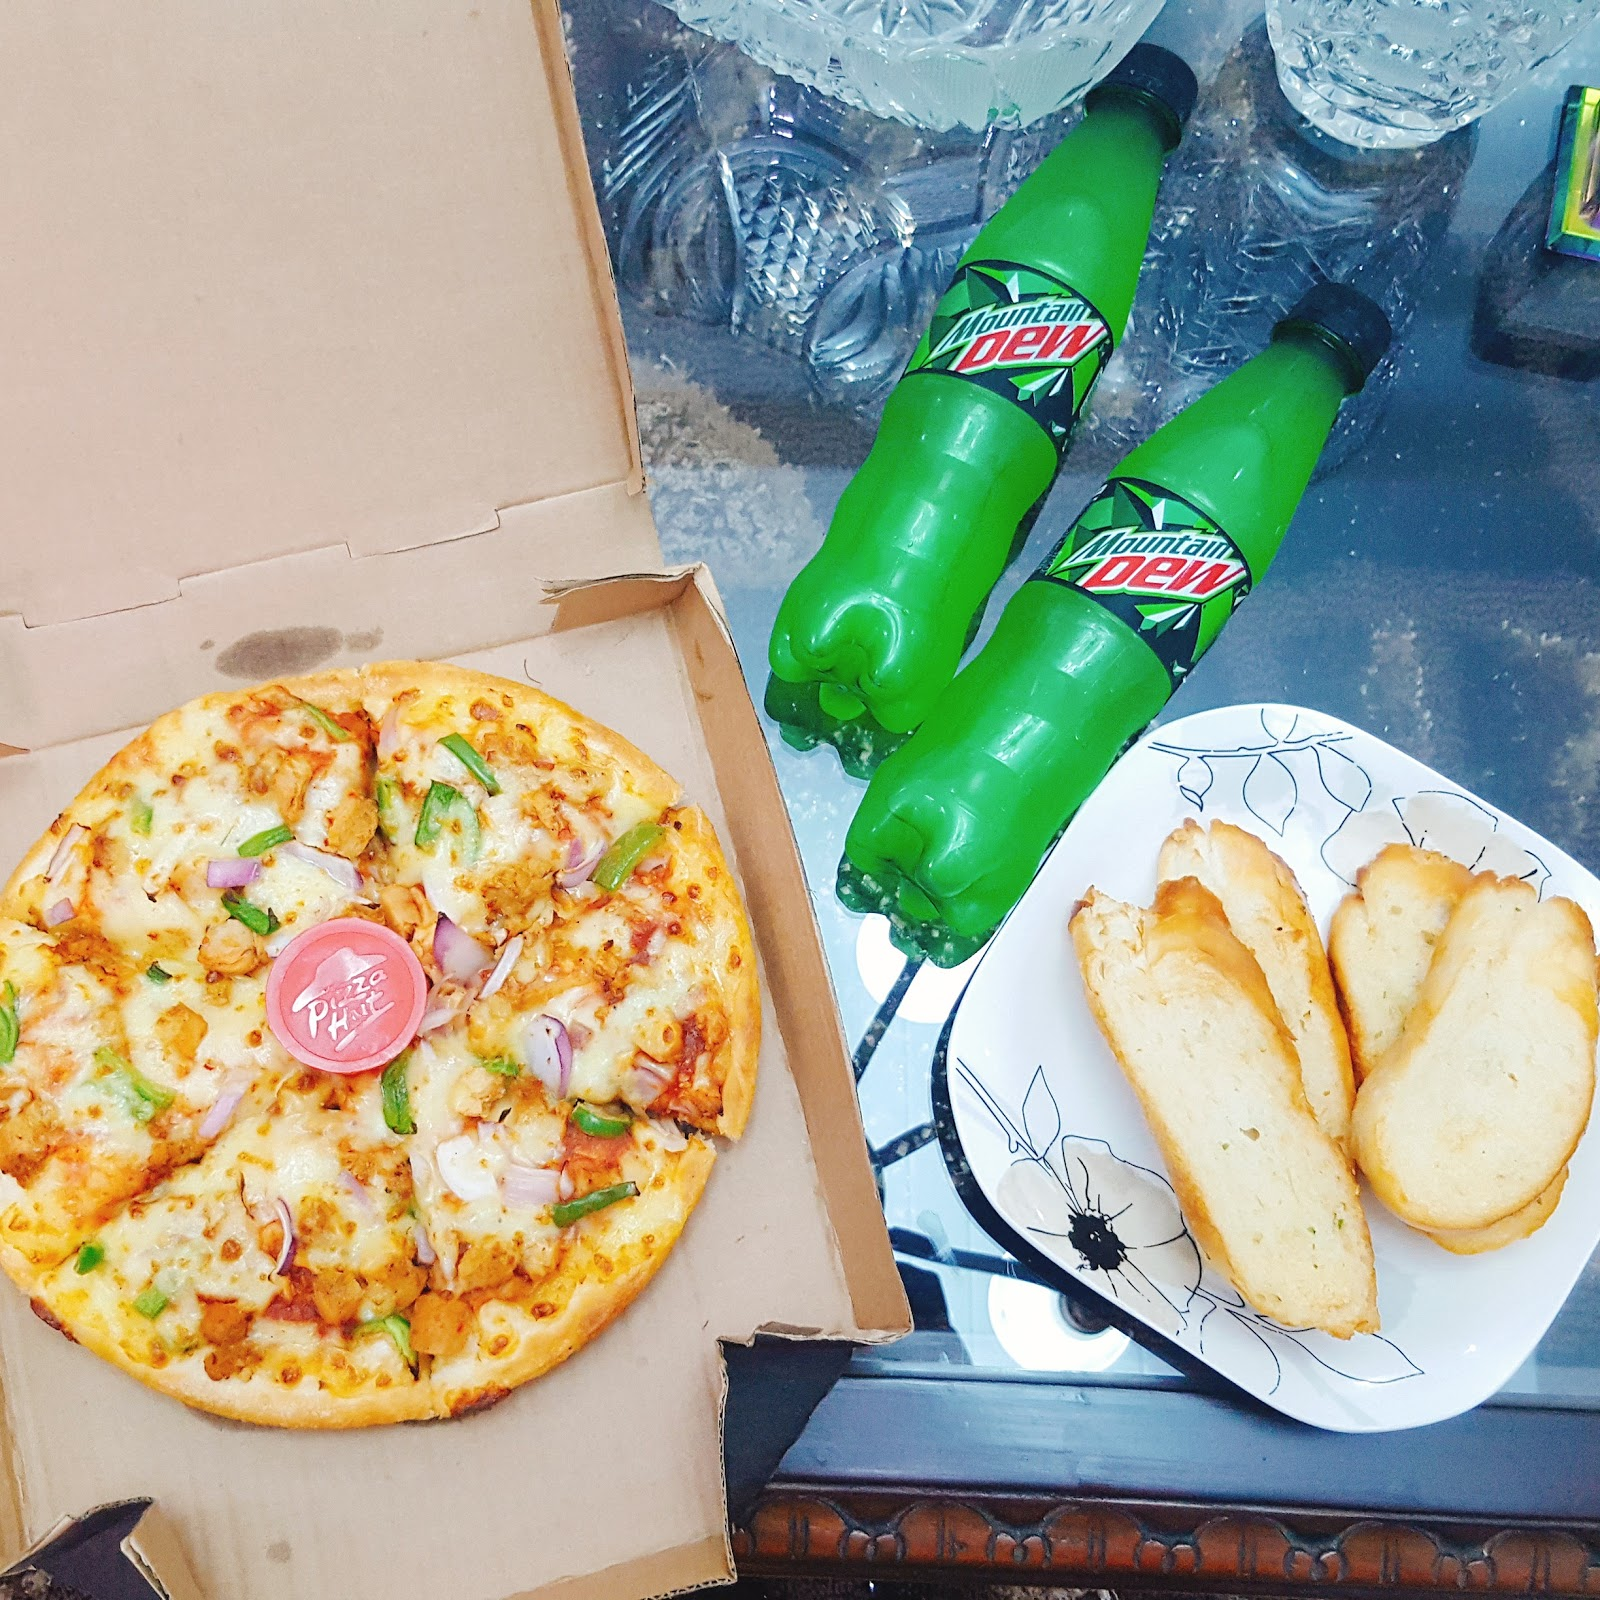 Pizza Hut Wow Deal Review Beautorgeous World